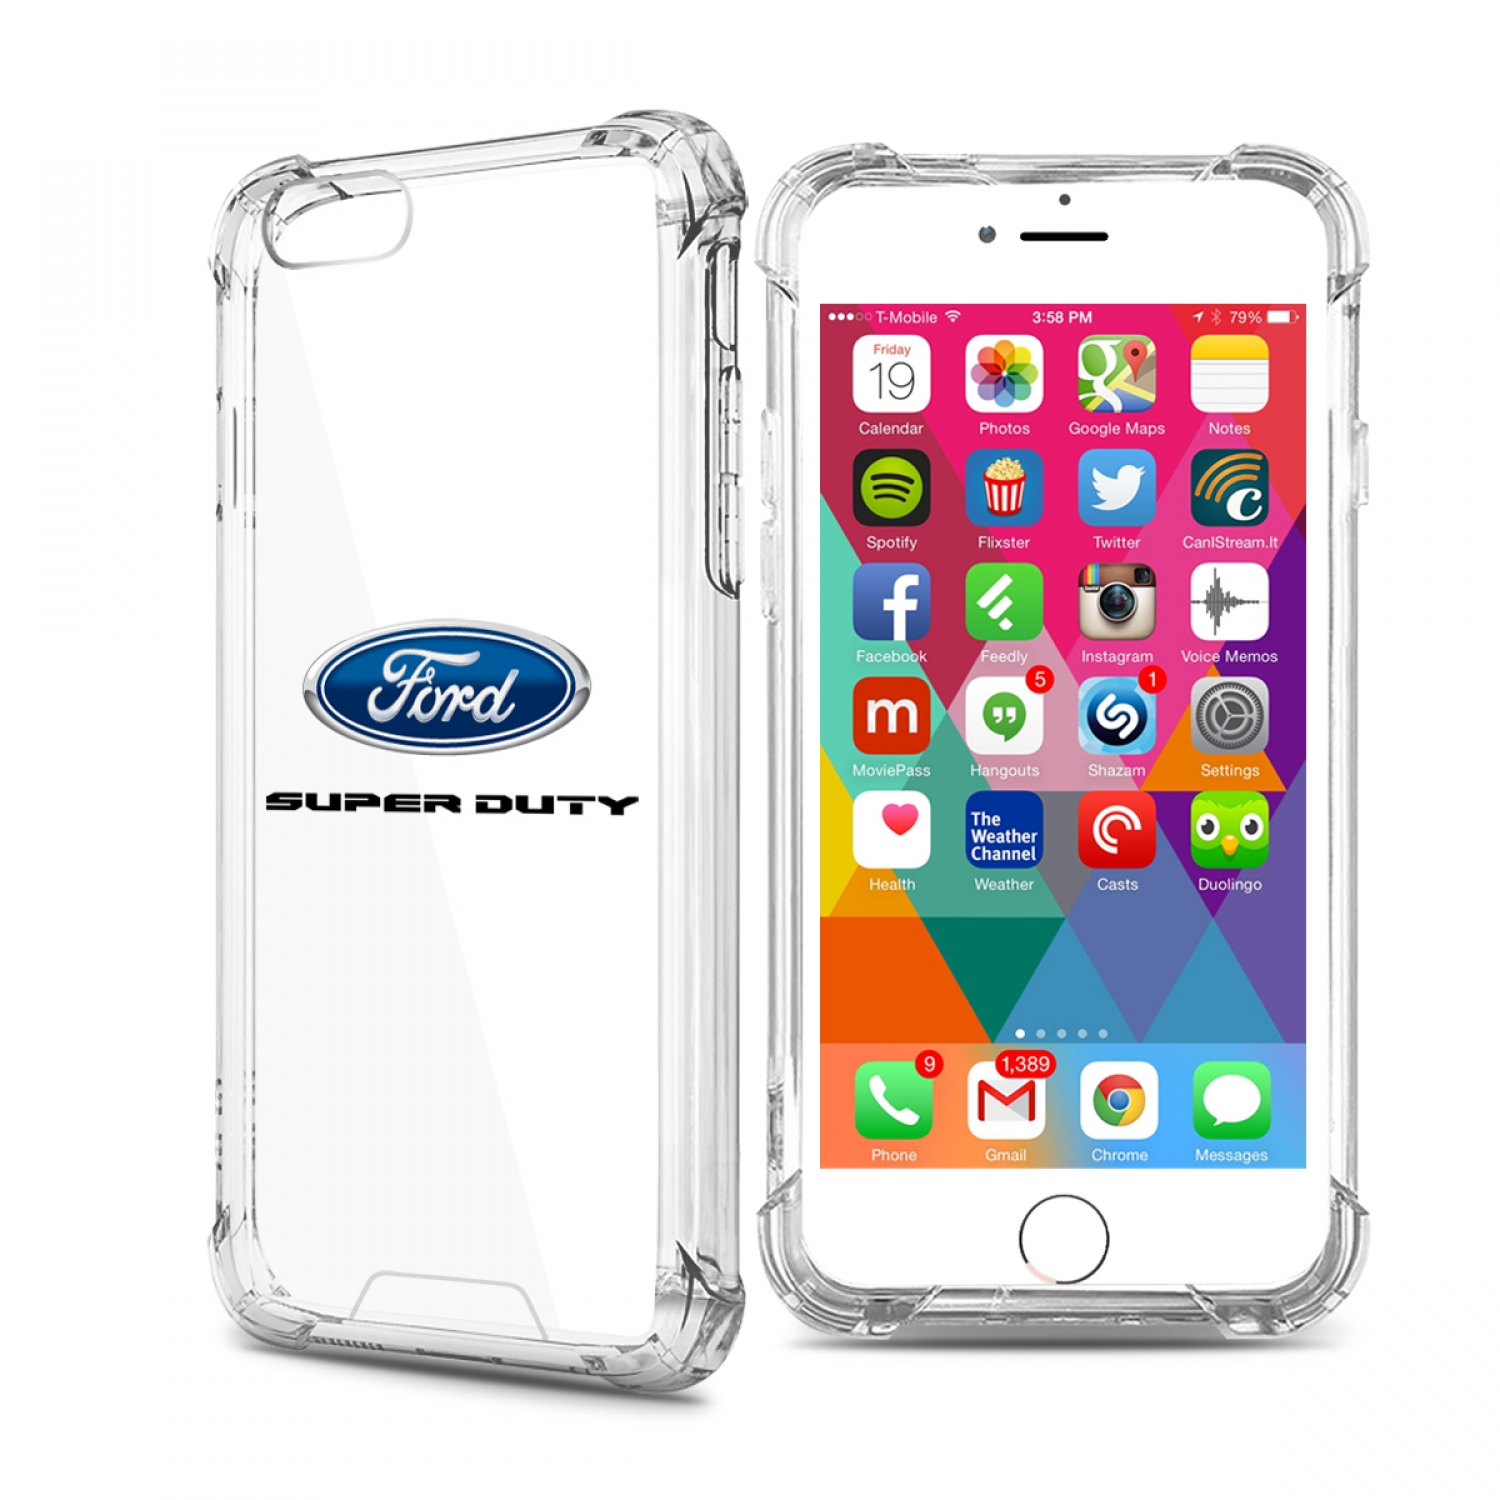 Ford Super Duty iPhone 7 Clear TPU Shockproof Cell Phone Case